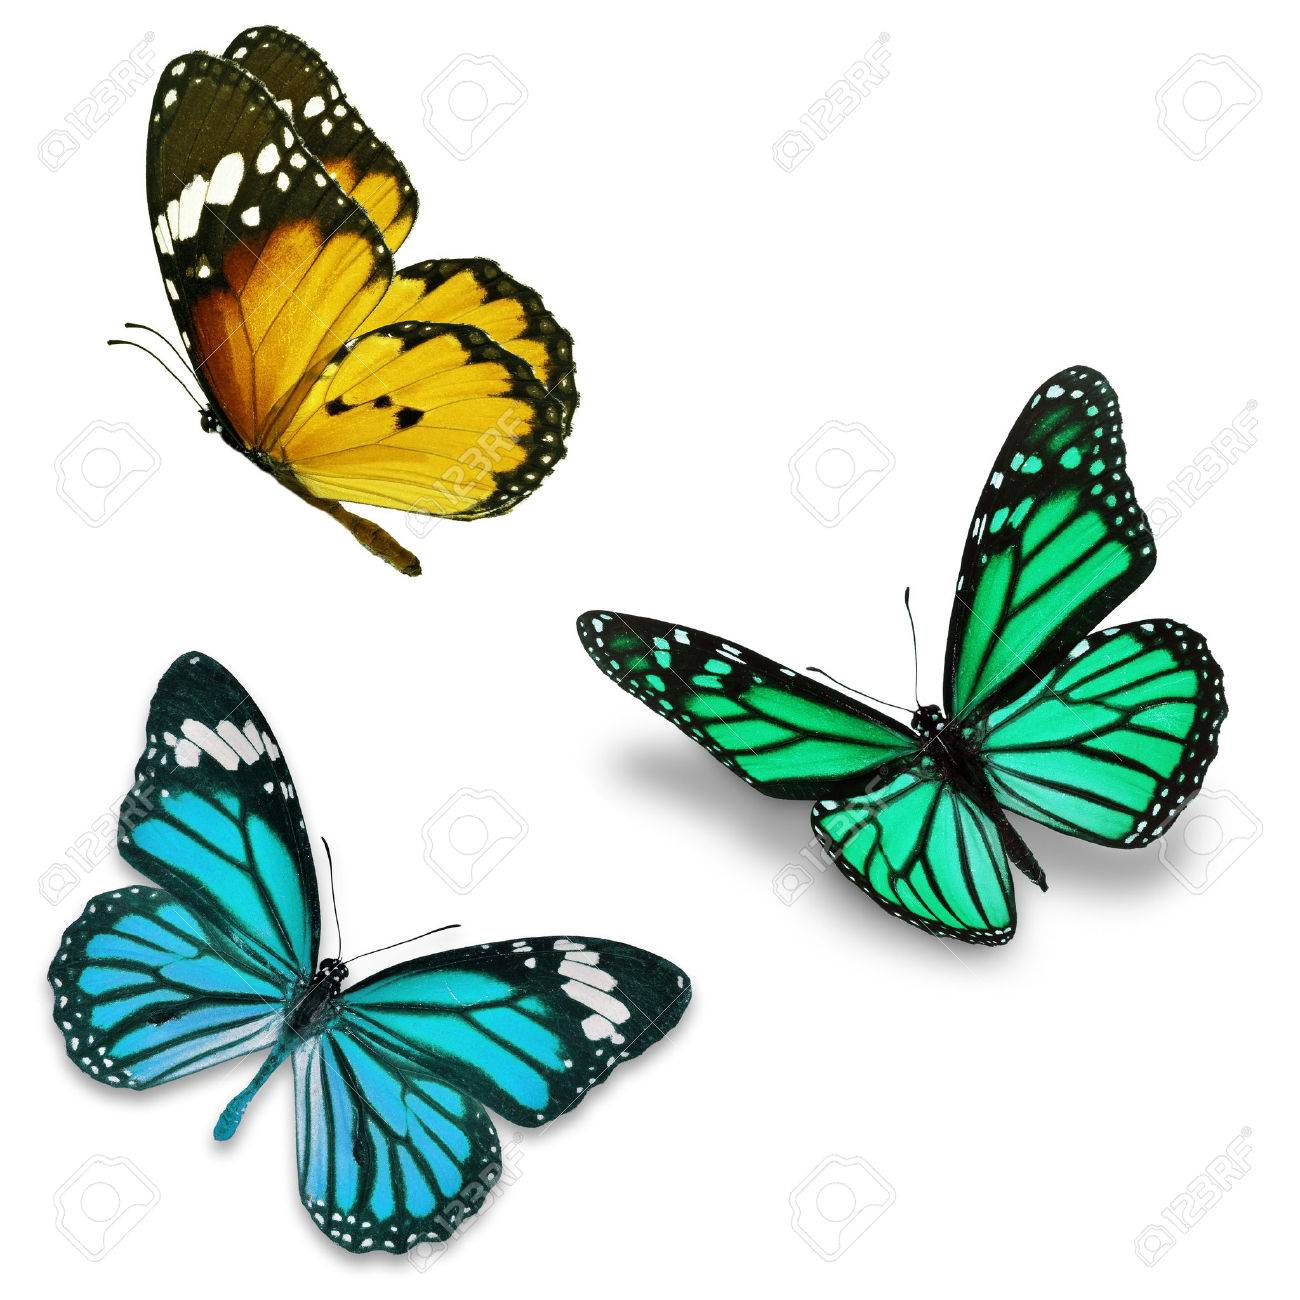 Three colorful butterfly, isolated on white background - 39084920